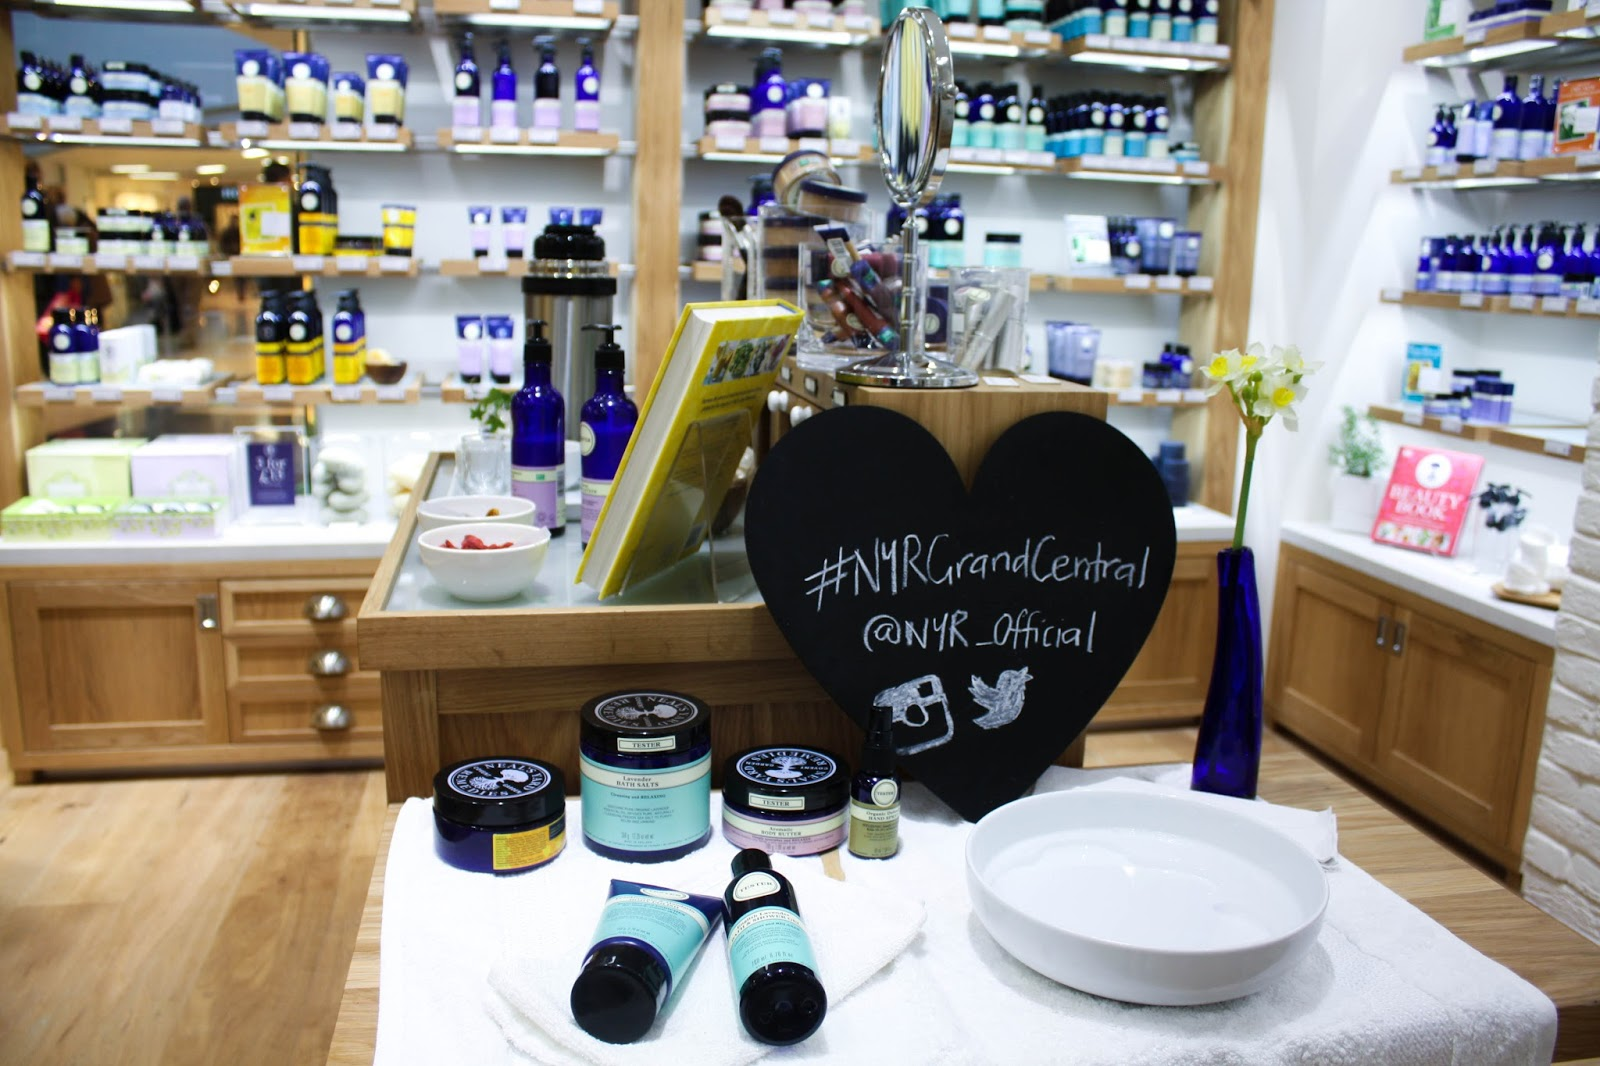 Blue bottles at Neal's Yard Remedies